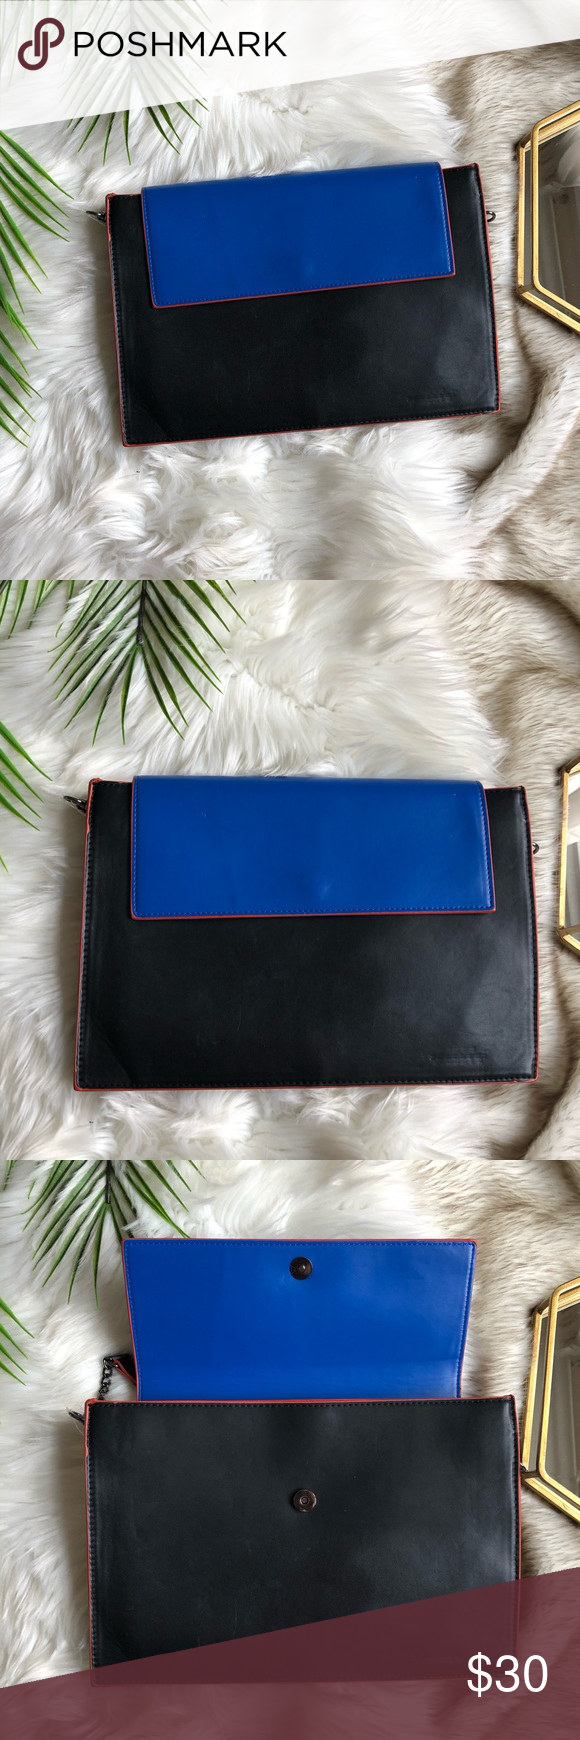 38a168c479cbae ZARA Colorblock Clutch Convertible Bag Purse ZARA Blue and black color  block with red trim Detachable